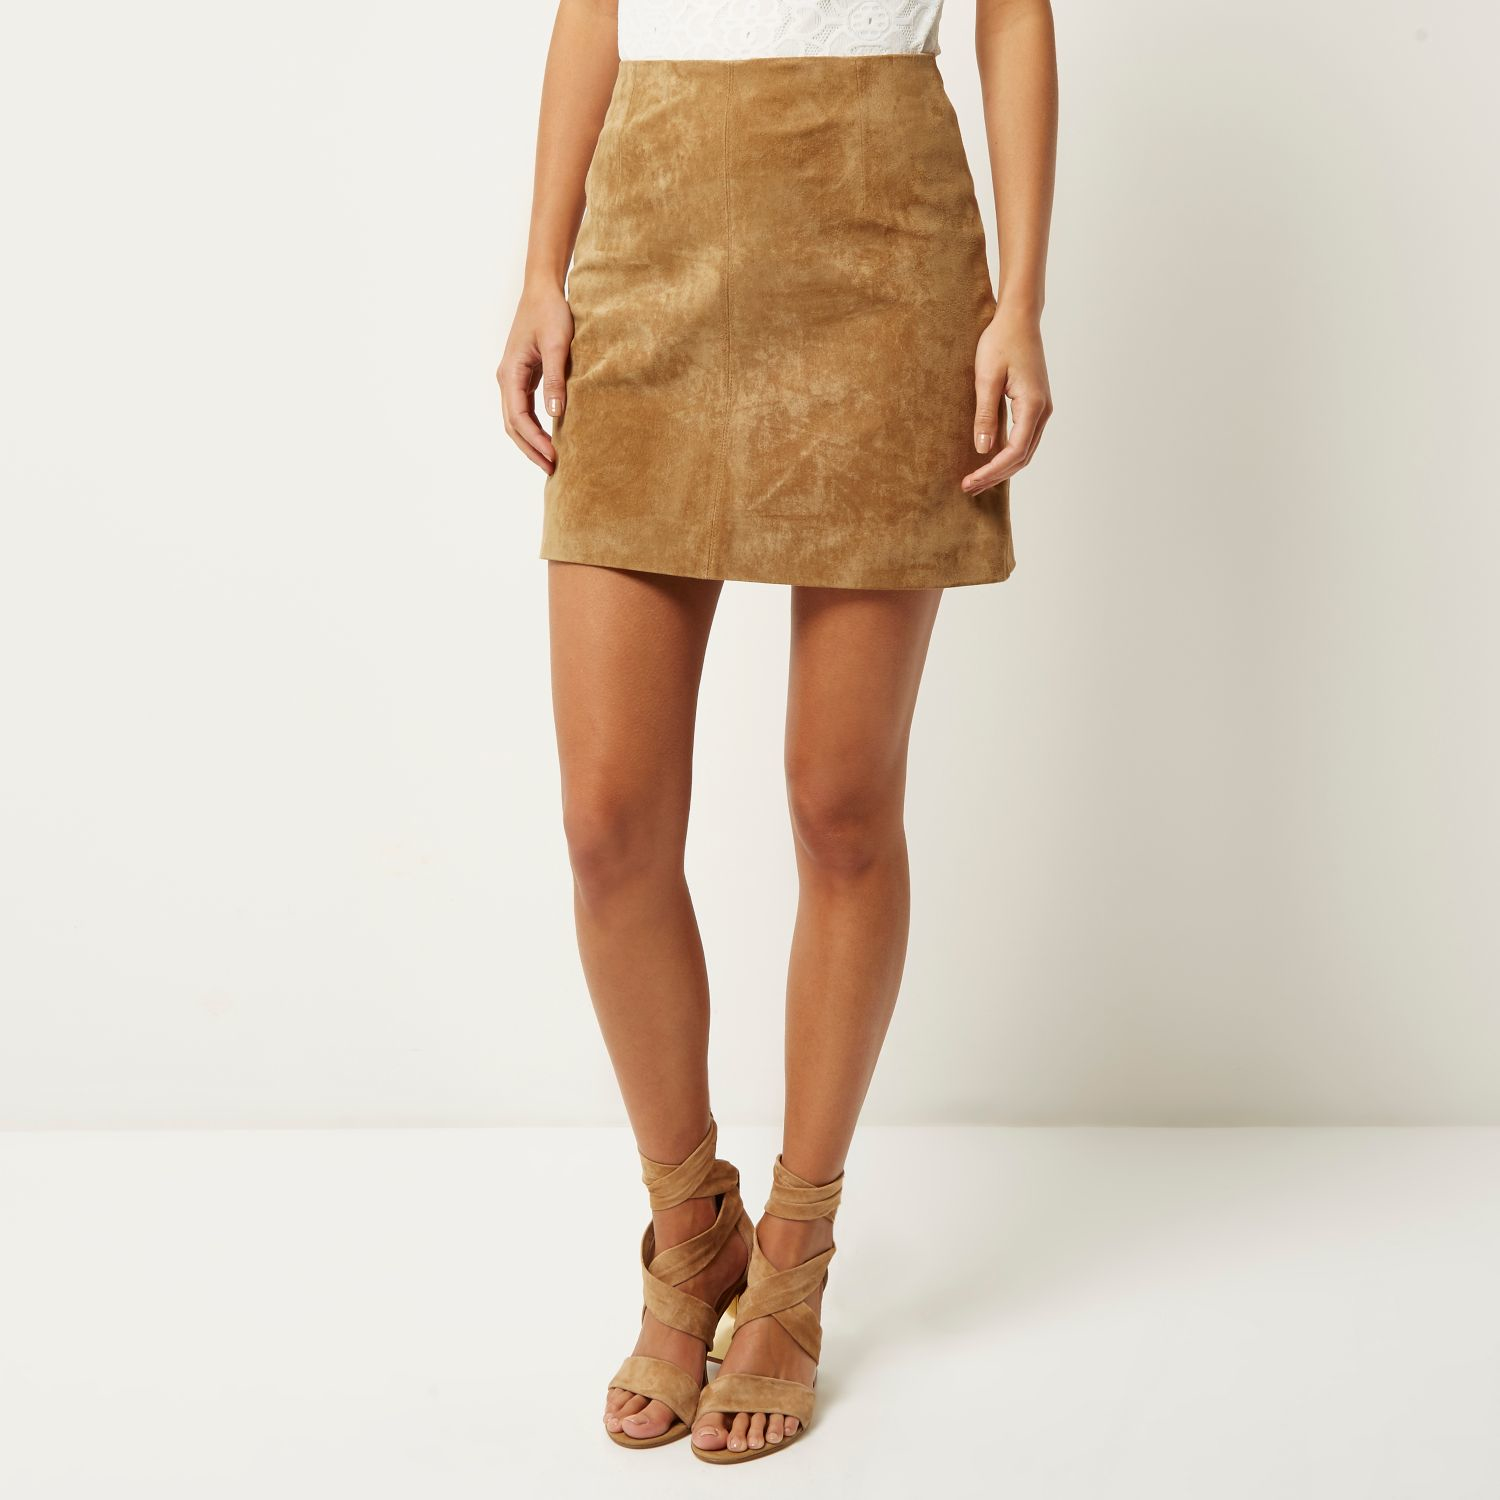 Brown Suede Mini Skirt - Dress Ala